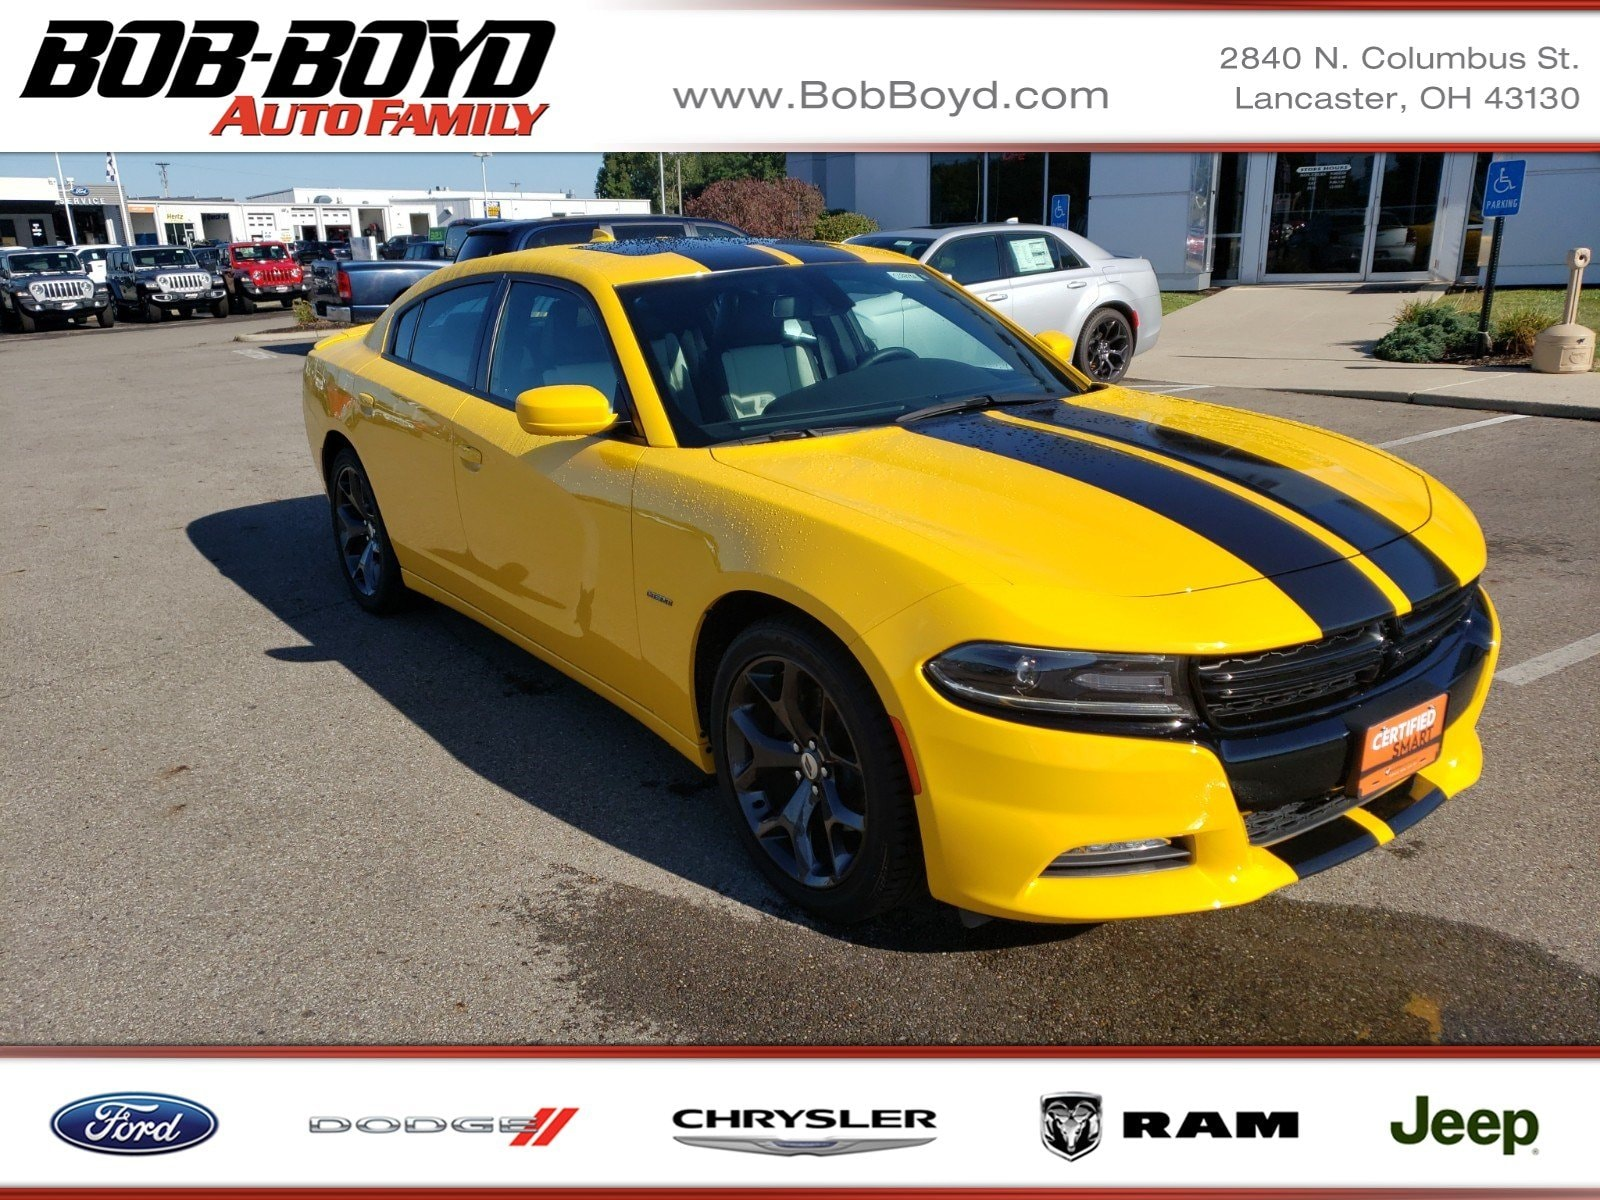 2017 Dodge Charger R/T R/T RWD